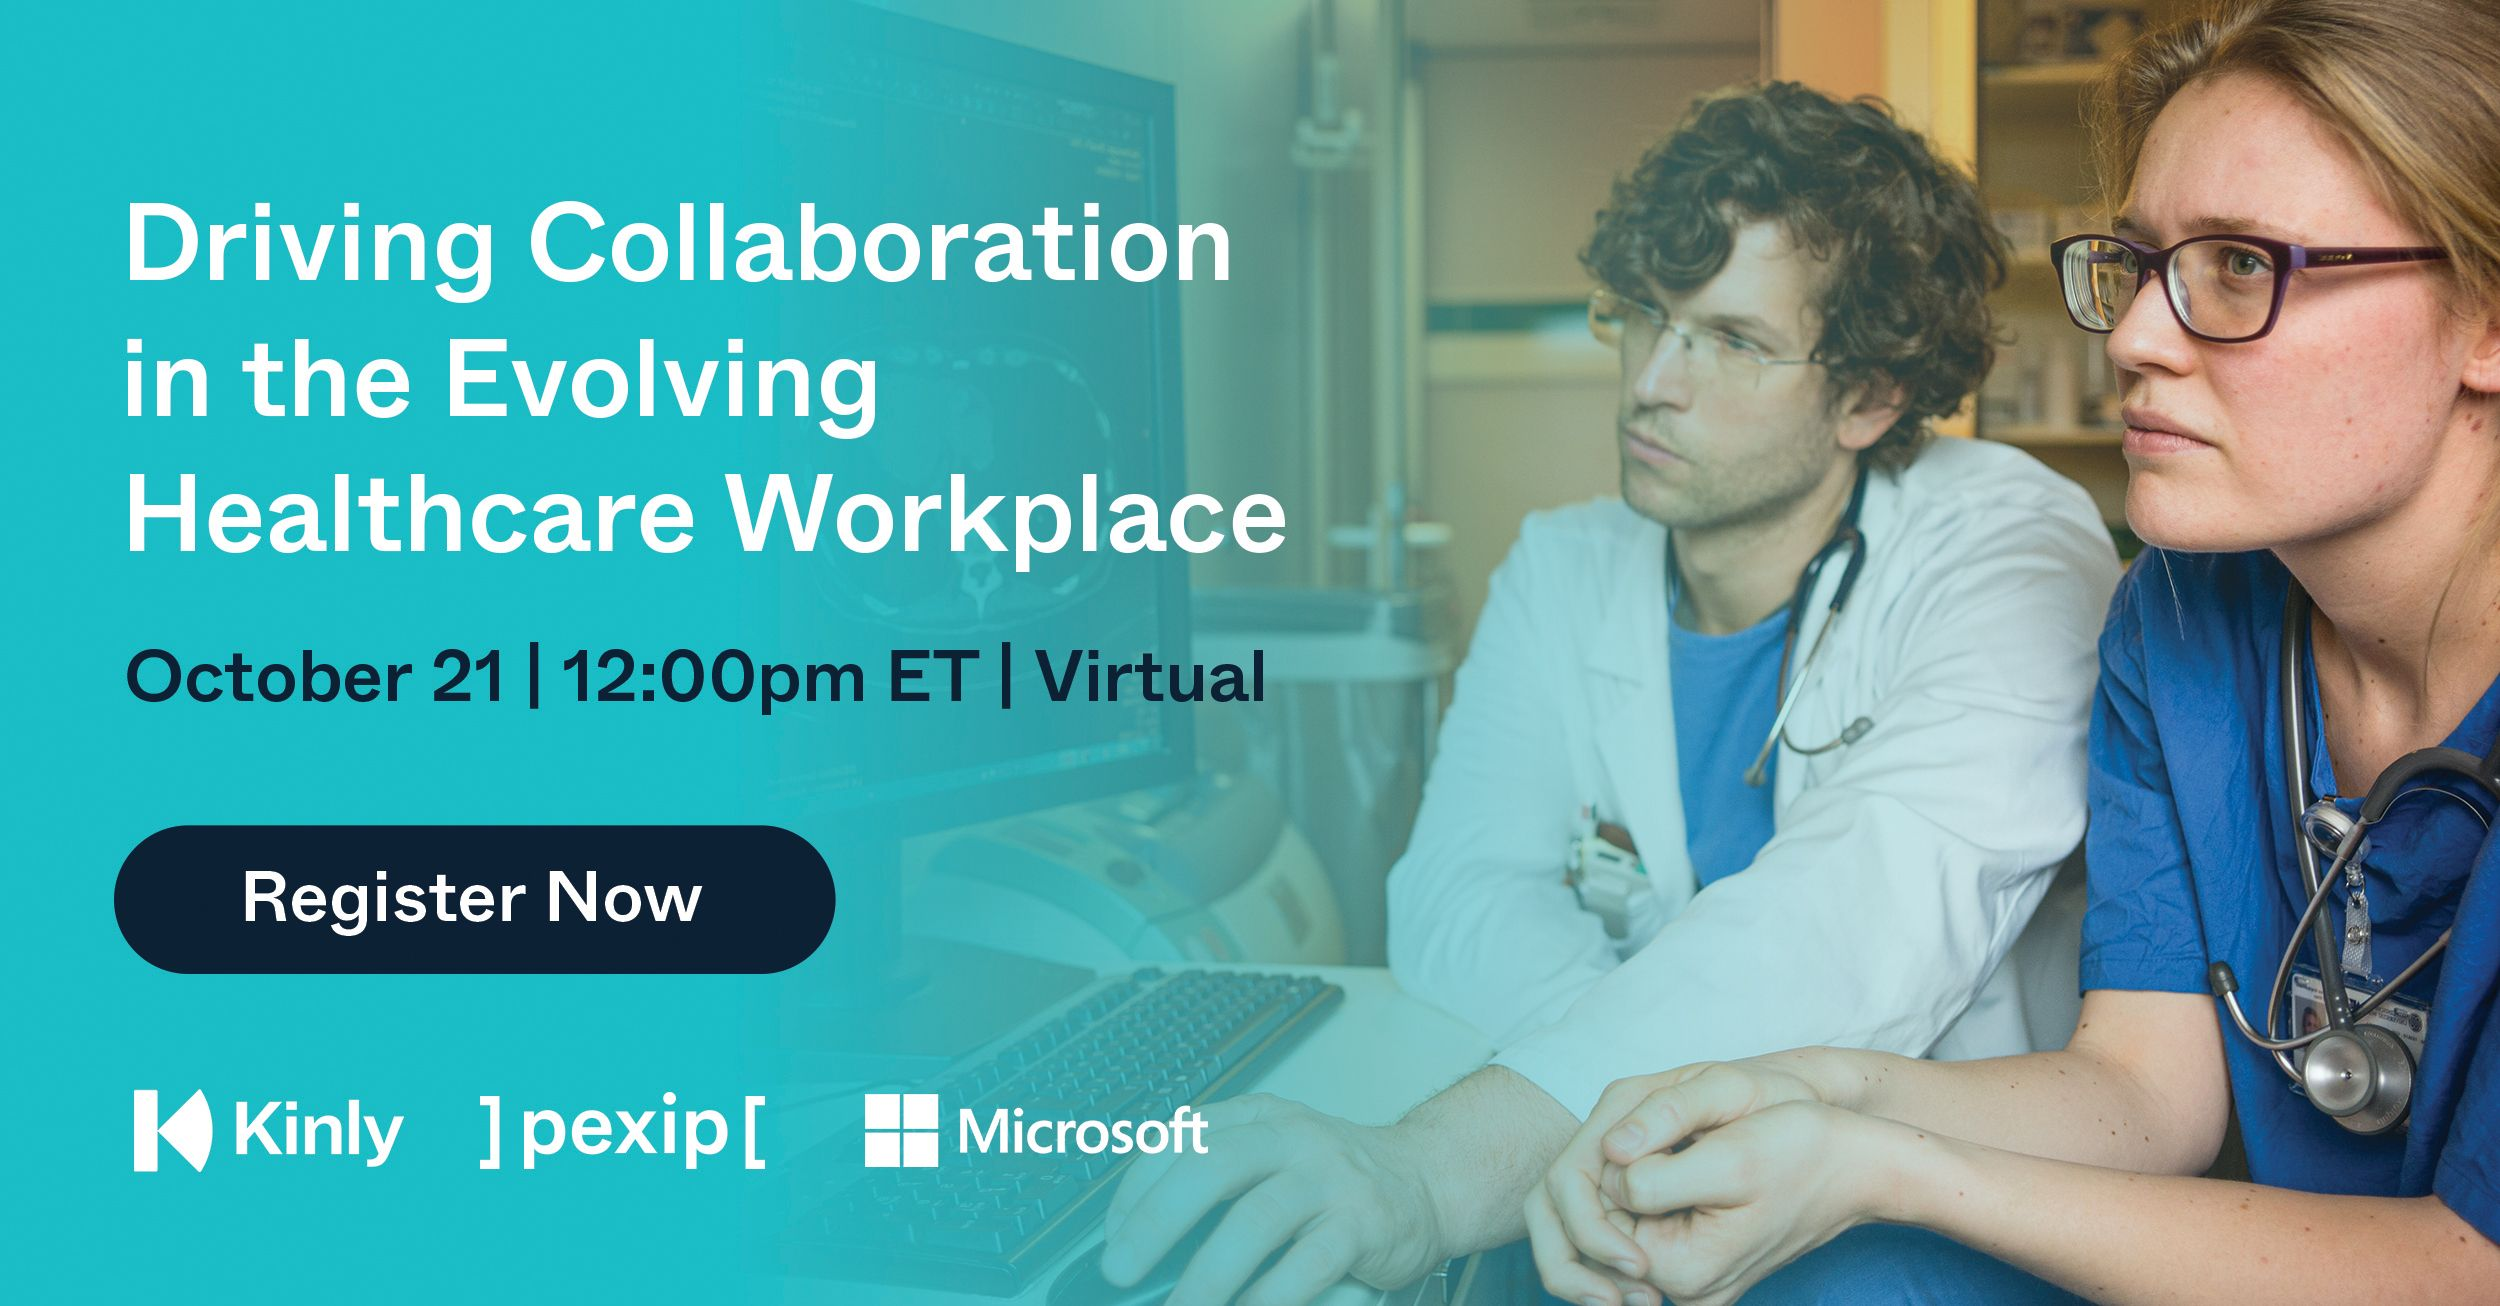 Driving Collaboration in the Evolving Healthcare Workplace